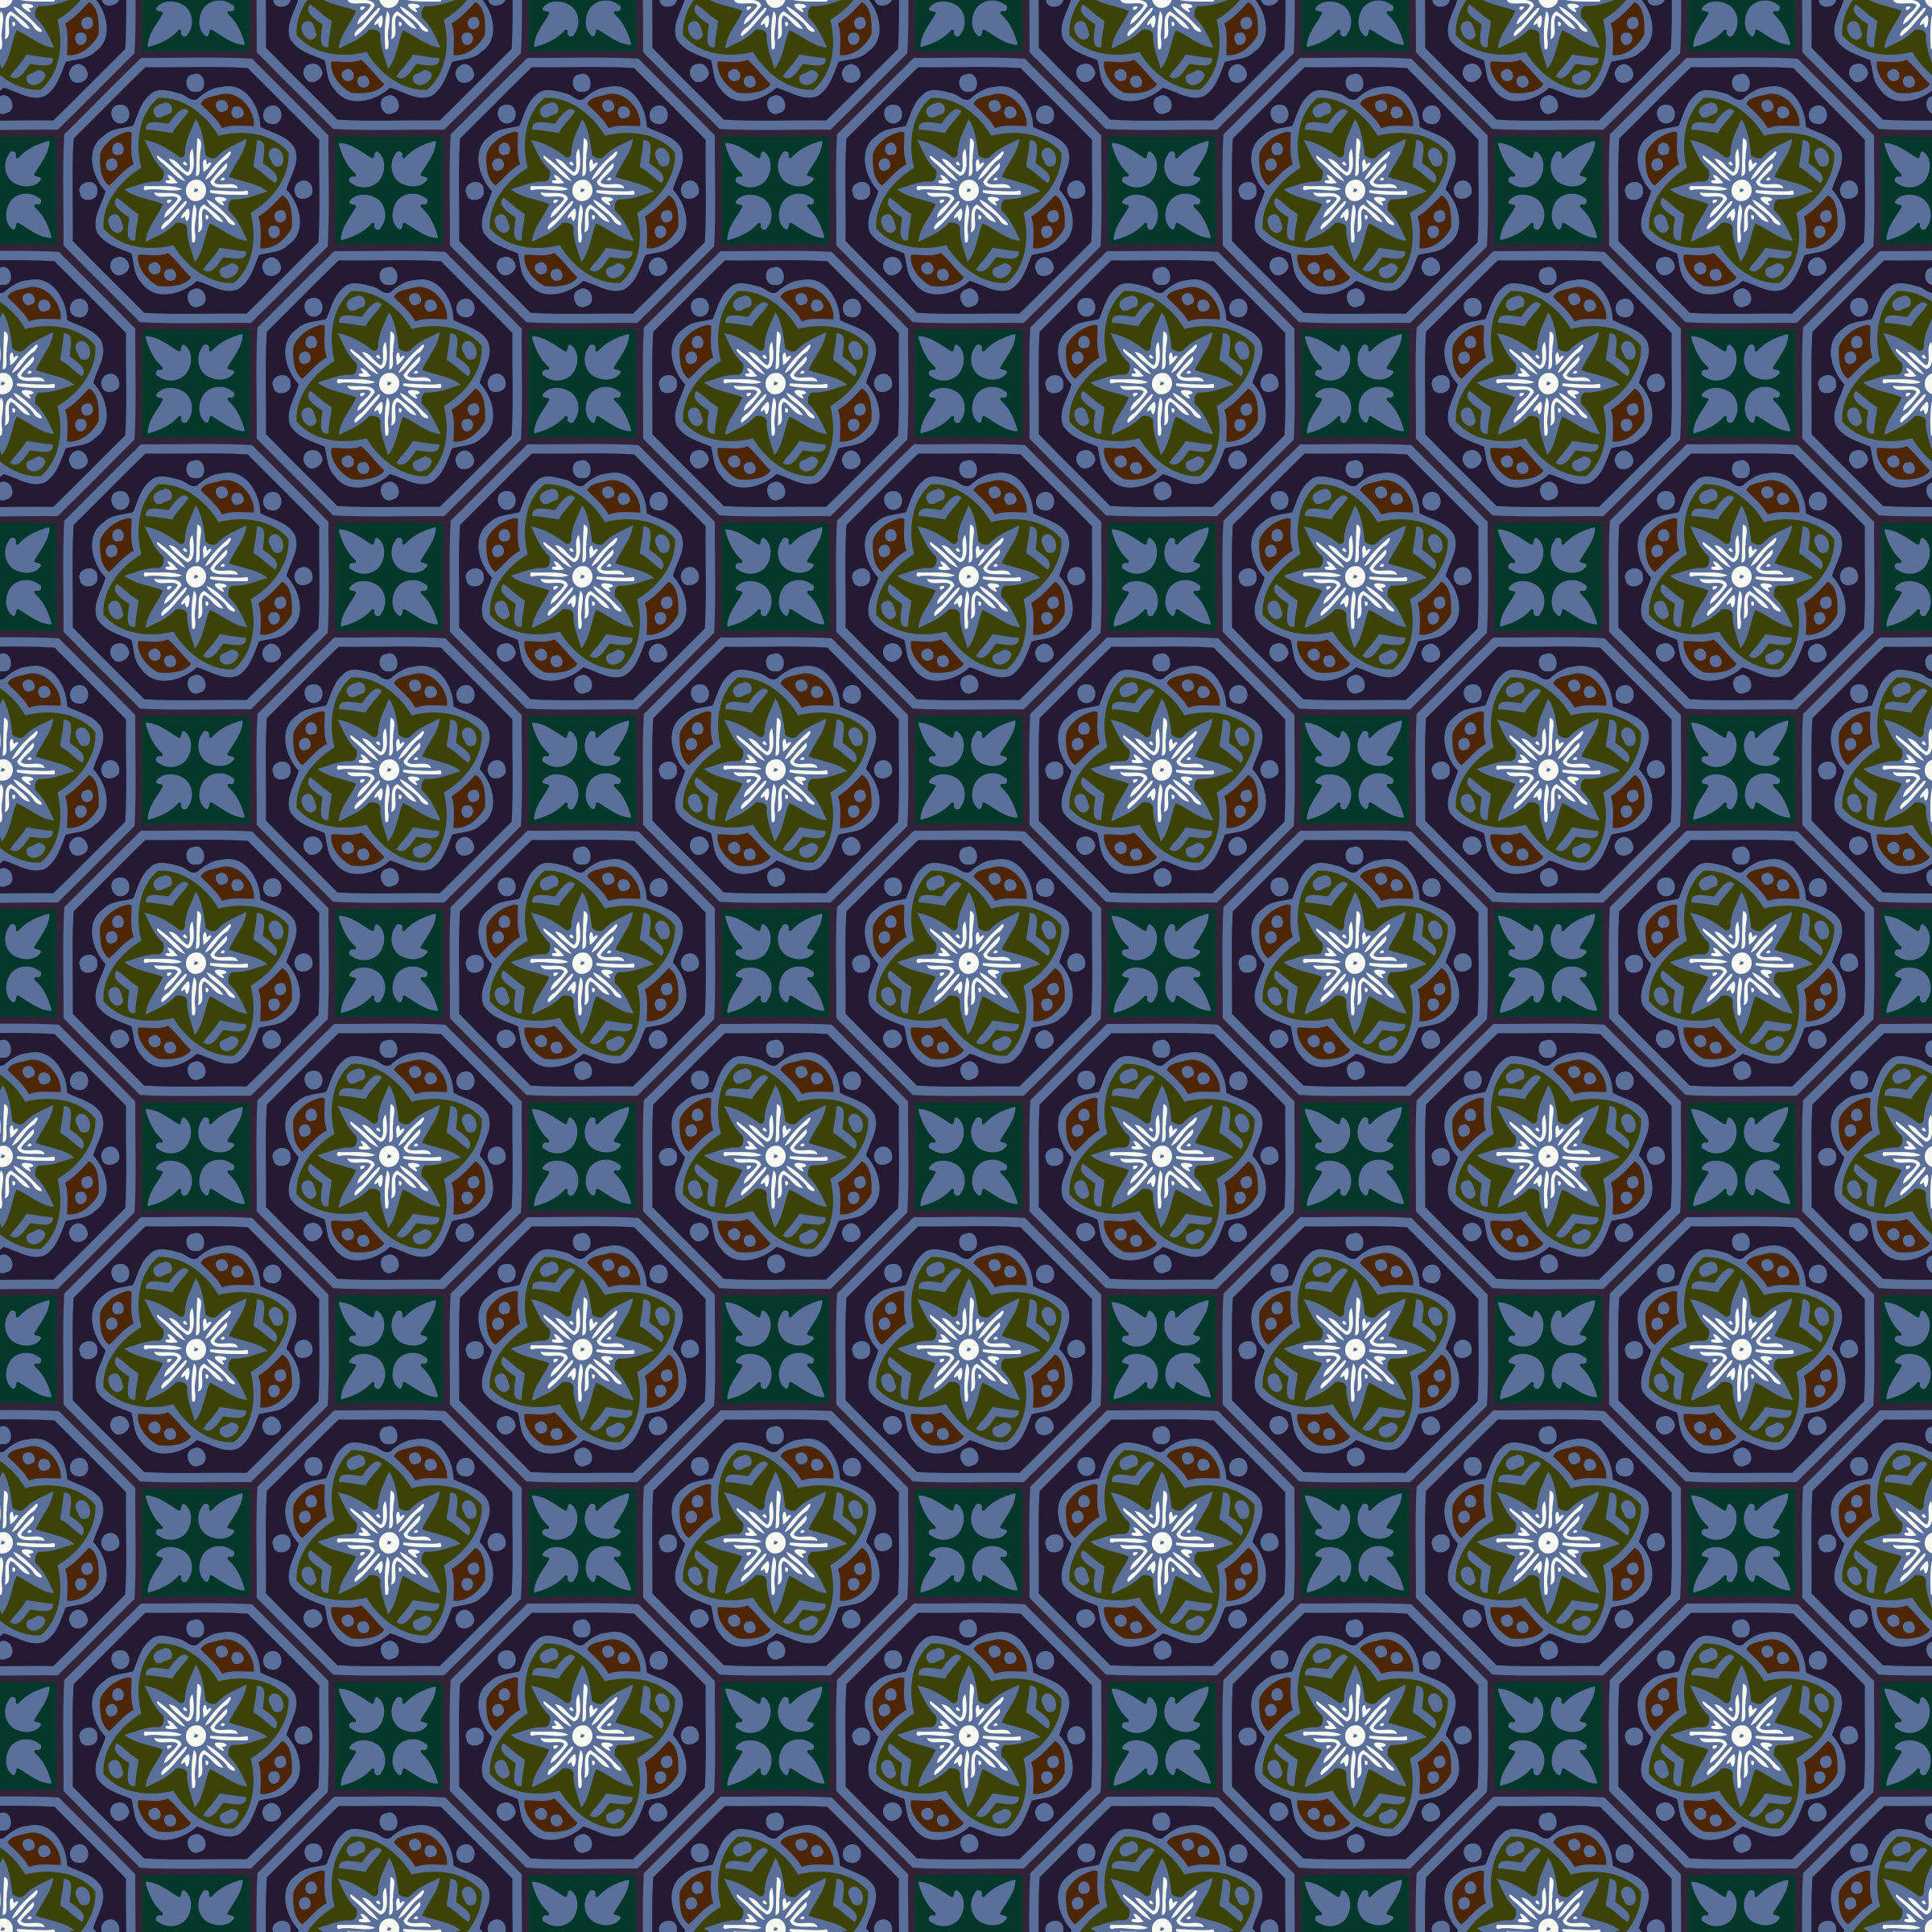 Background pattern 119 (colour) by Firkin